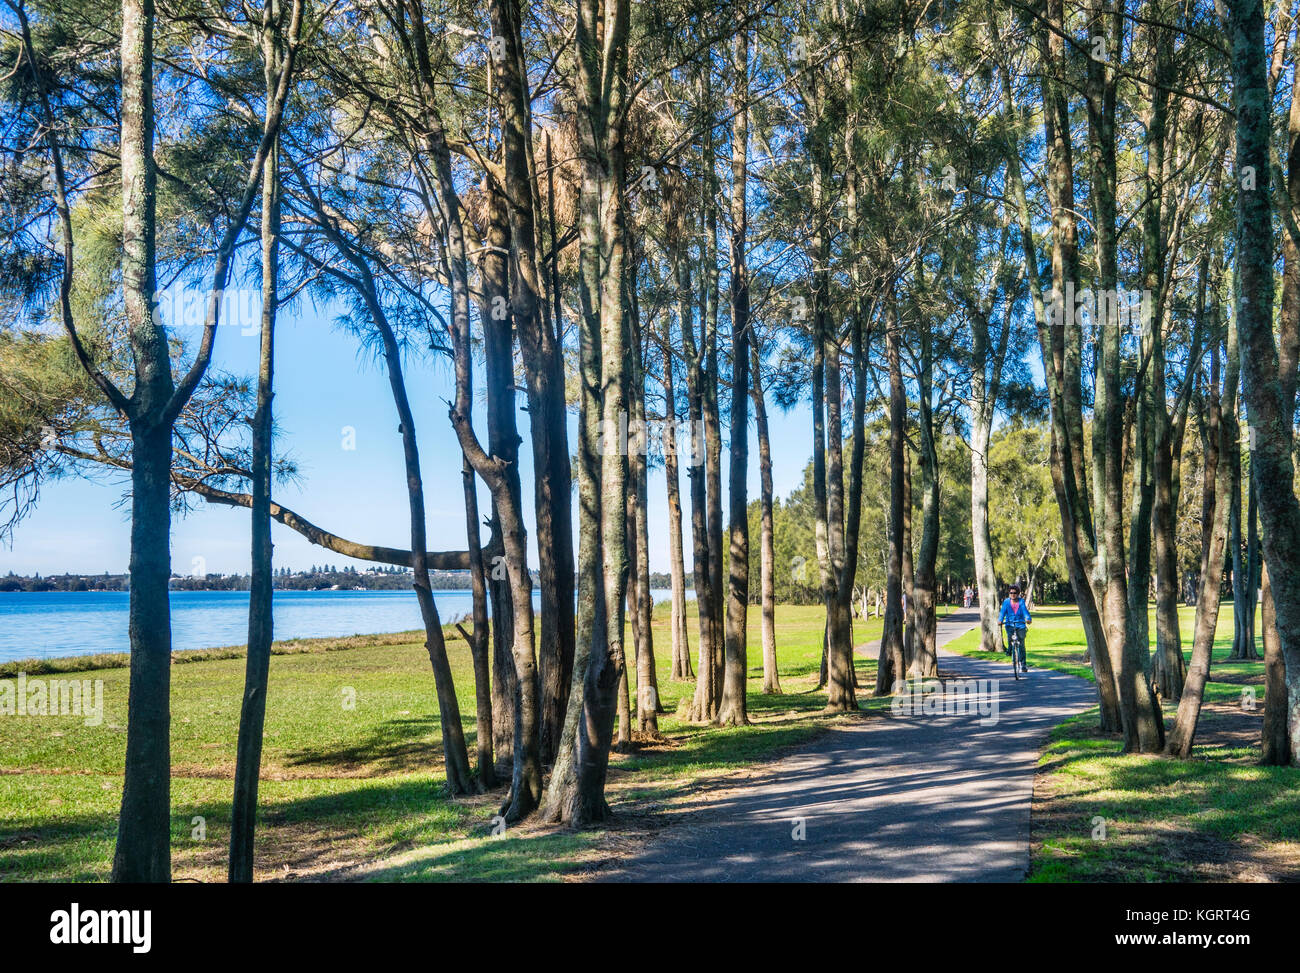 Australia, New South Wales, Central Coast, Killarney Vale, stand of cypress pines at the Phillip Pritchard cycleway - Stock Image